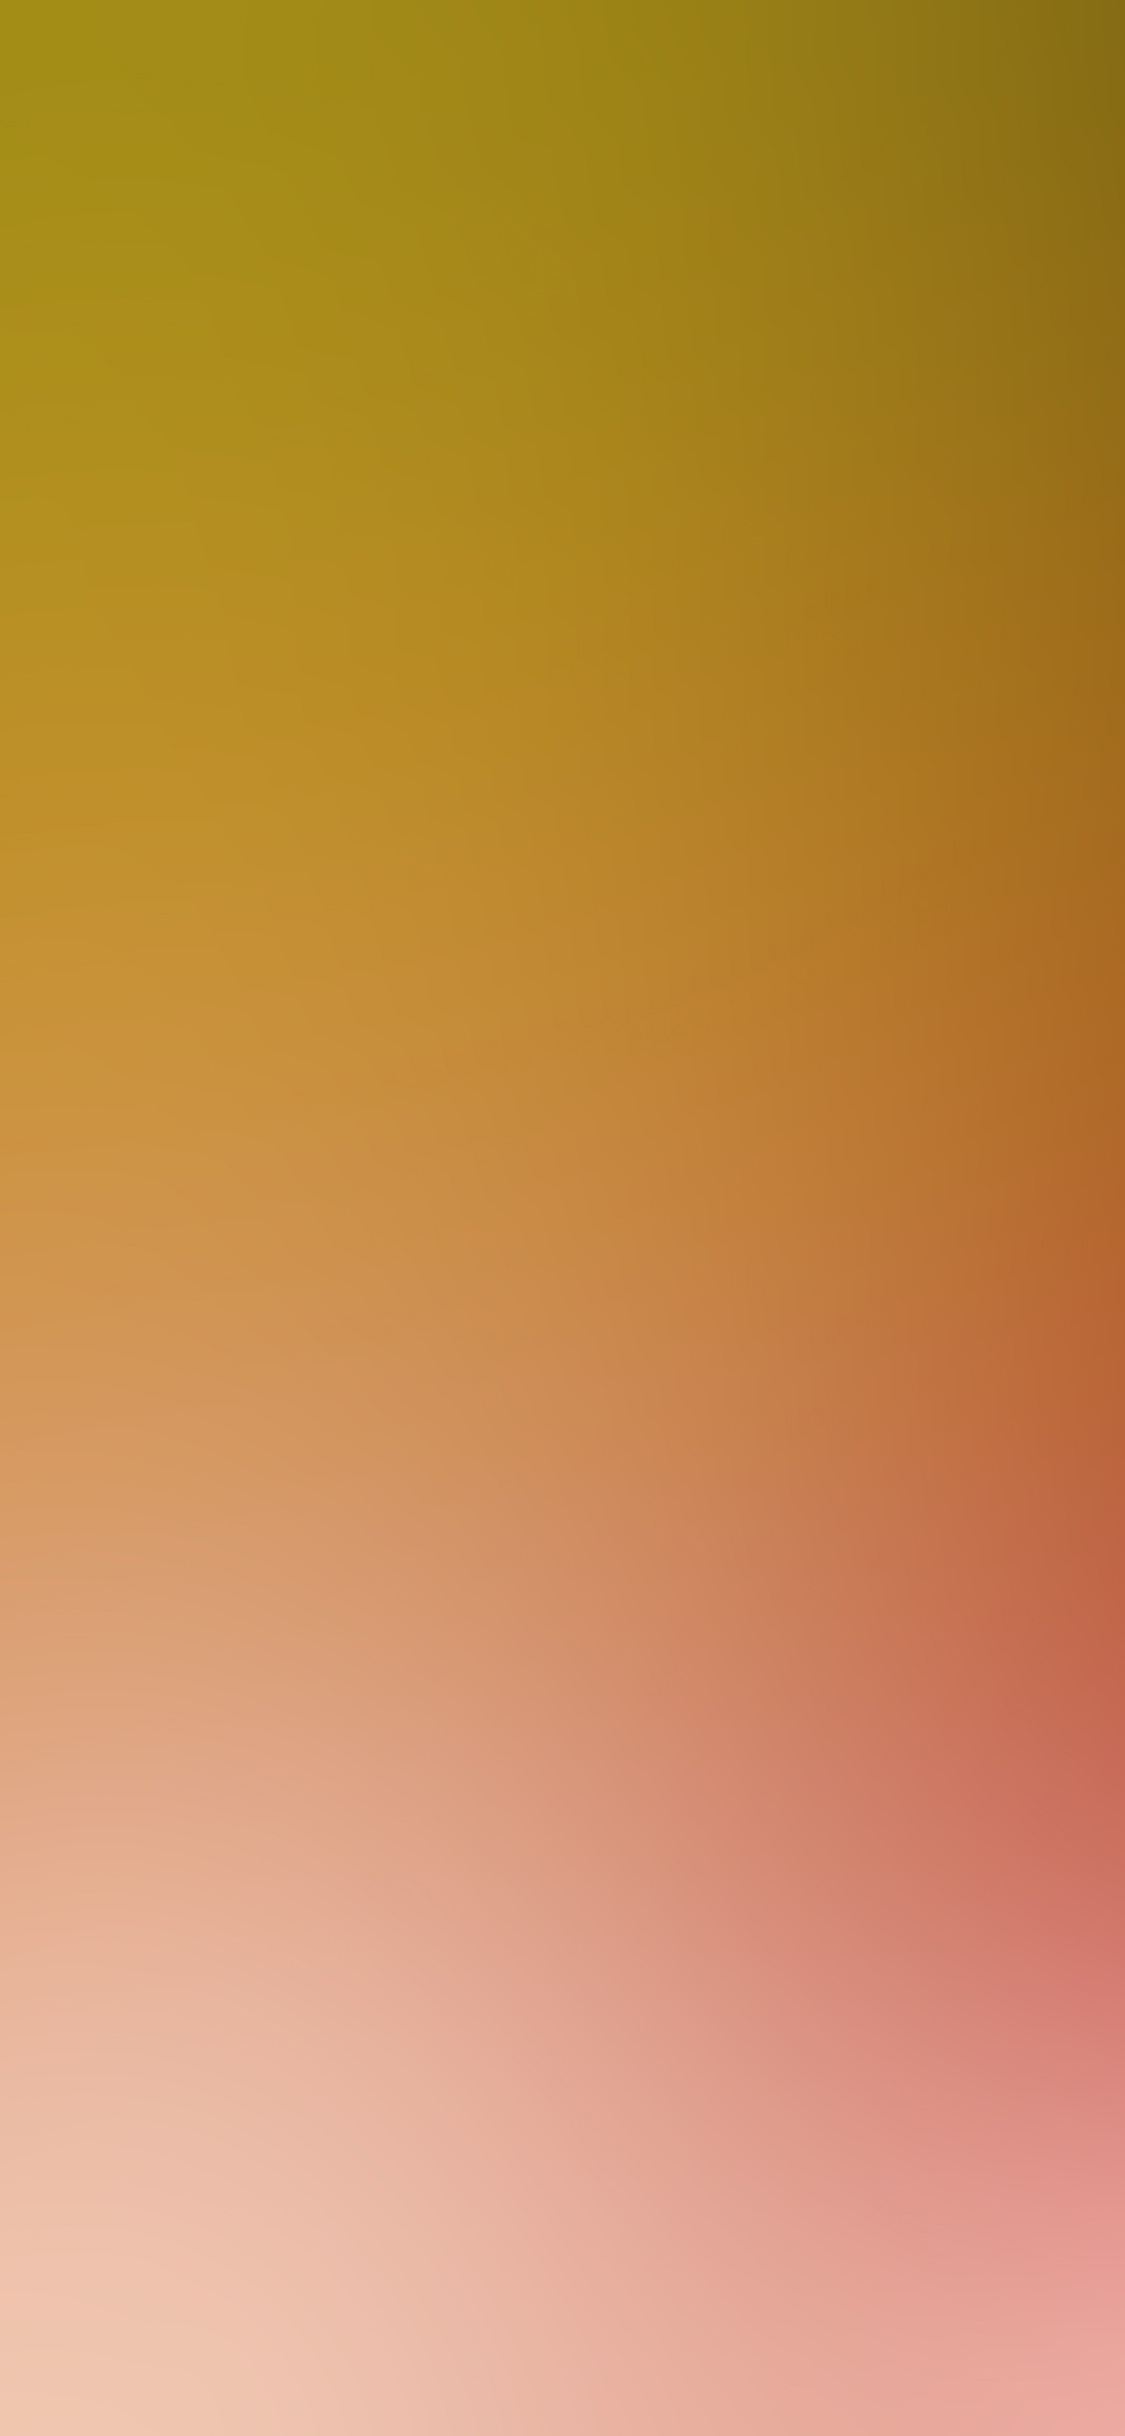 iPhoneXpapers.com-Apple-iPhone-wallpaper-sf81-orange-red-sex-on-the-beach-gradation-blur